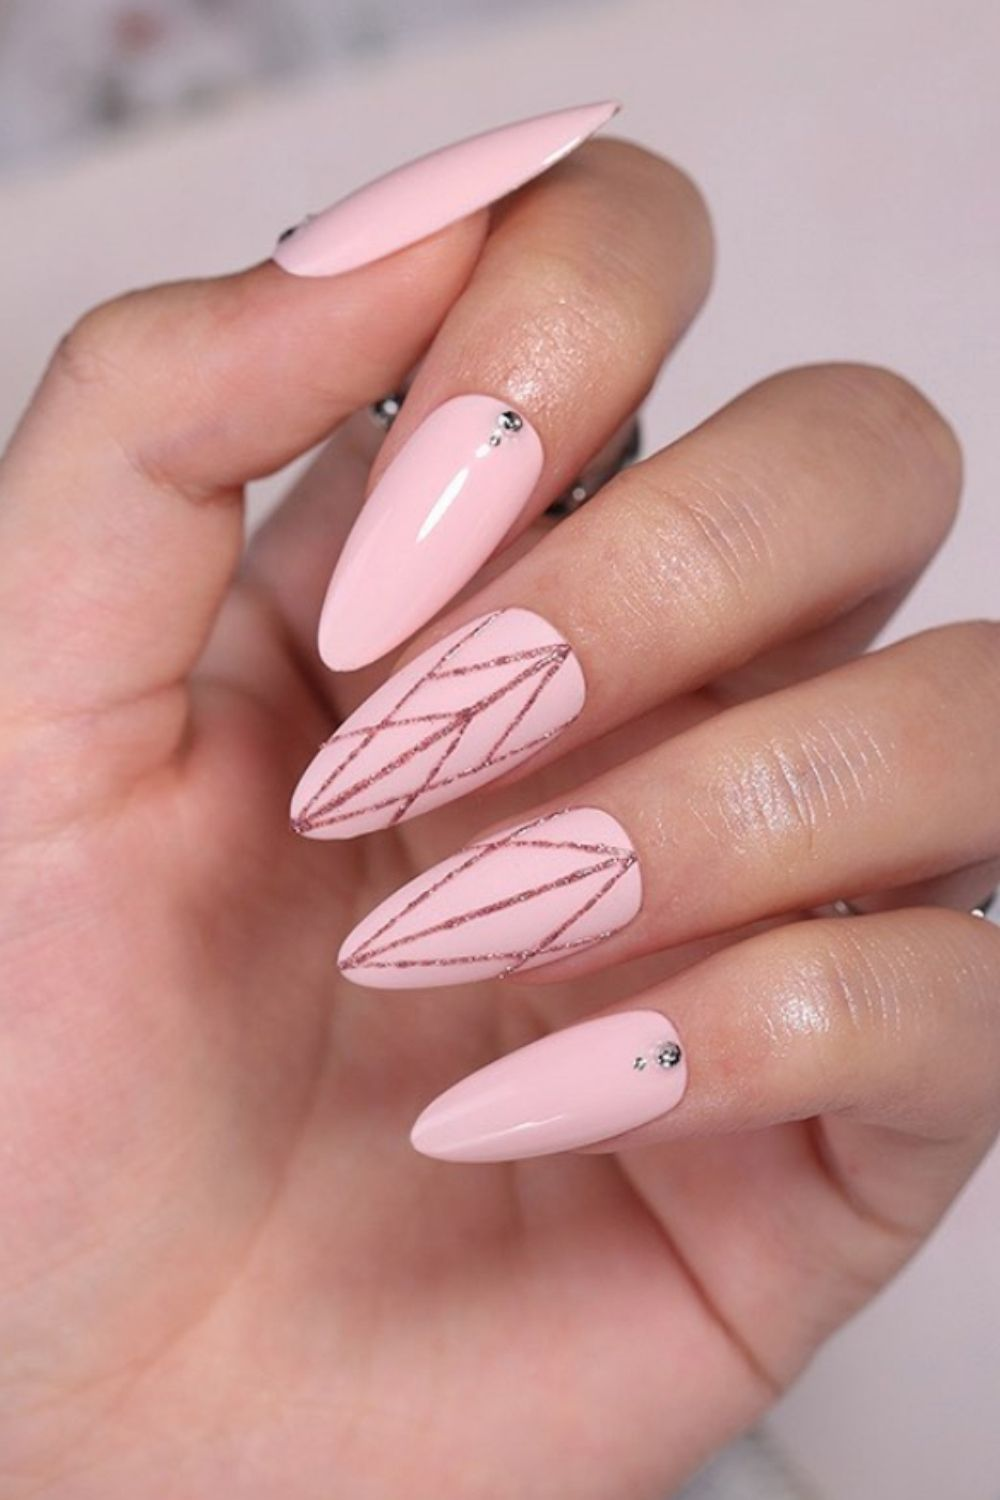 A geometric almond nail design in pink and gold